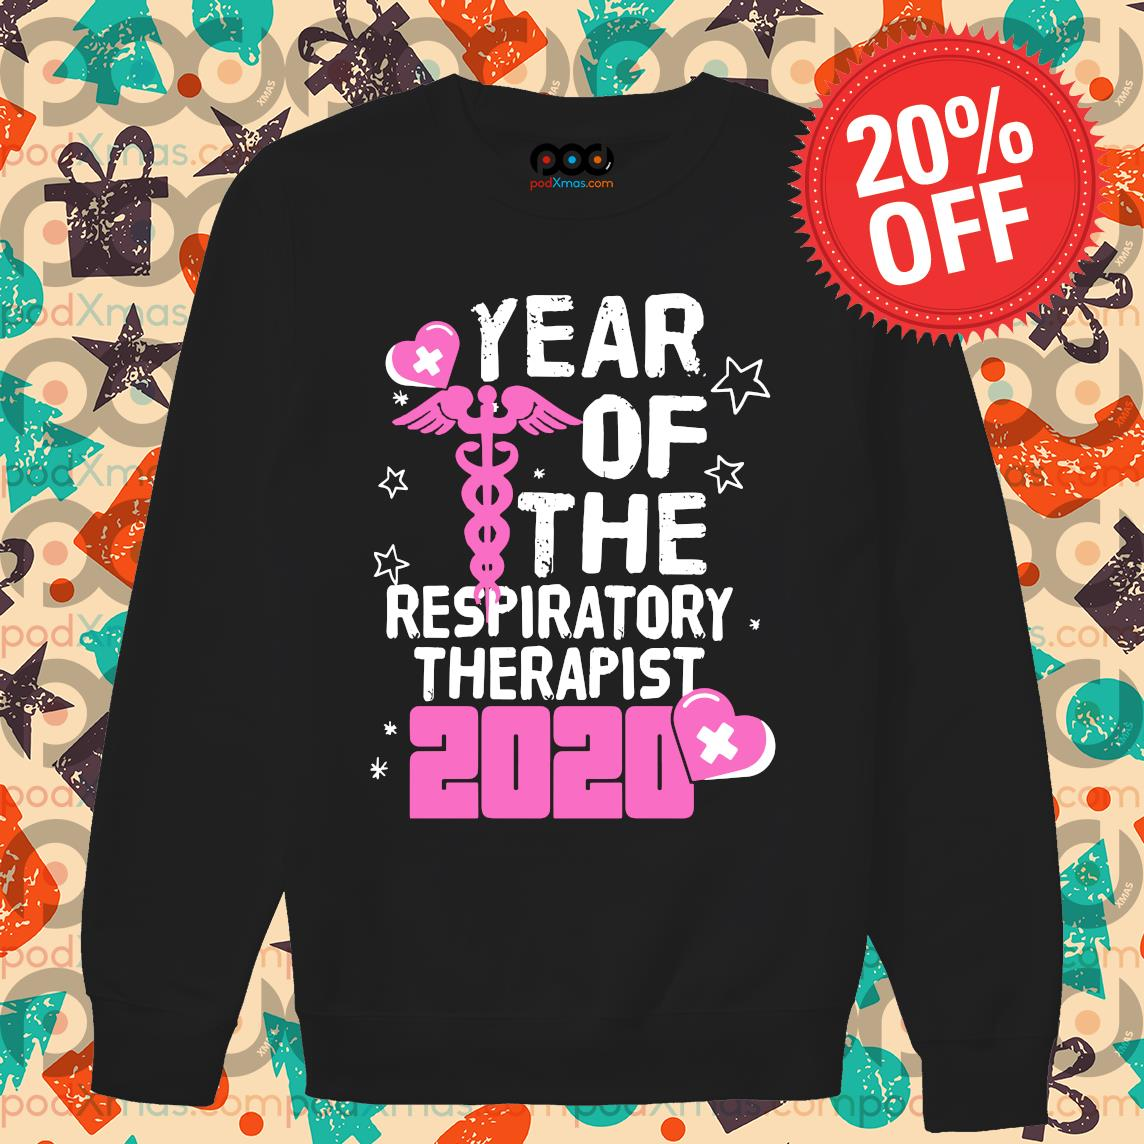 Year of the respiratory therapist 2020 s Sweater PODxmas den